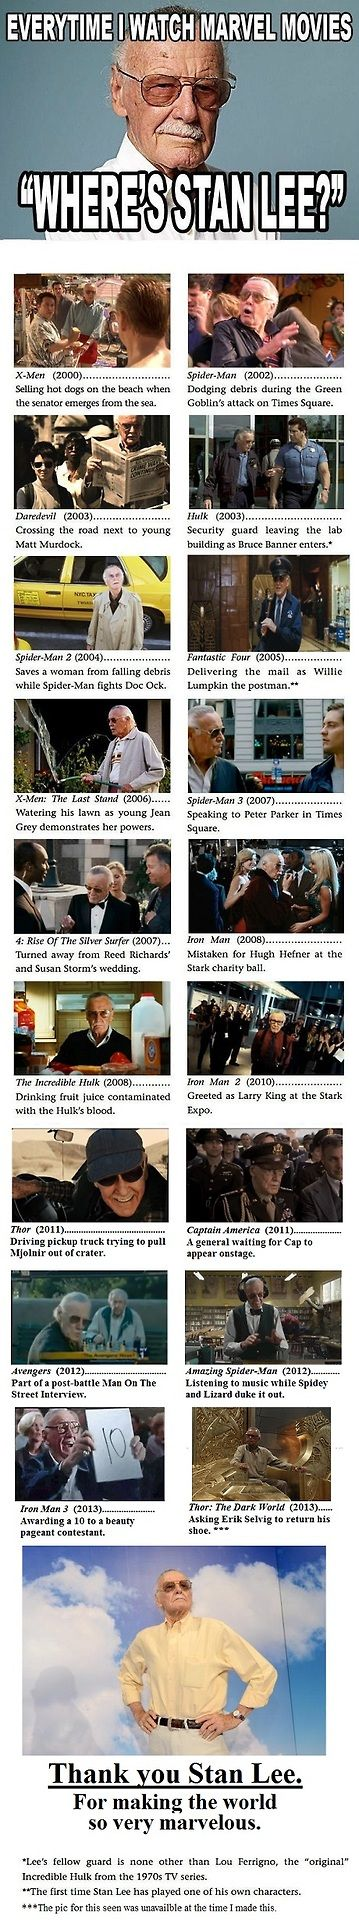 Stan Lee in Marvel films. He has the right idea. If I made it this big doing superhero stuff I would want a cameo in all of the movies, too.